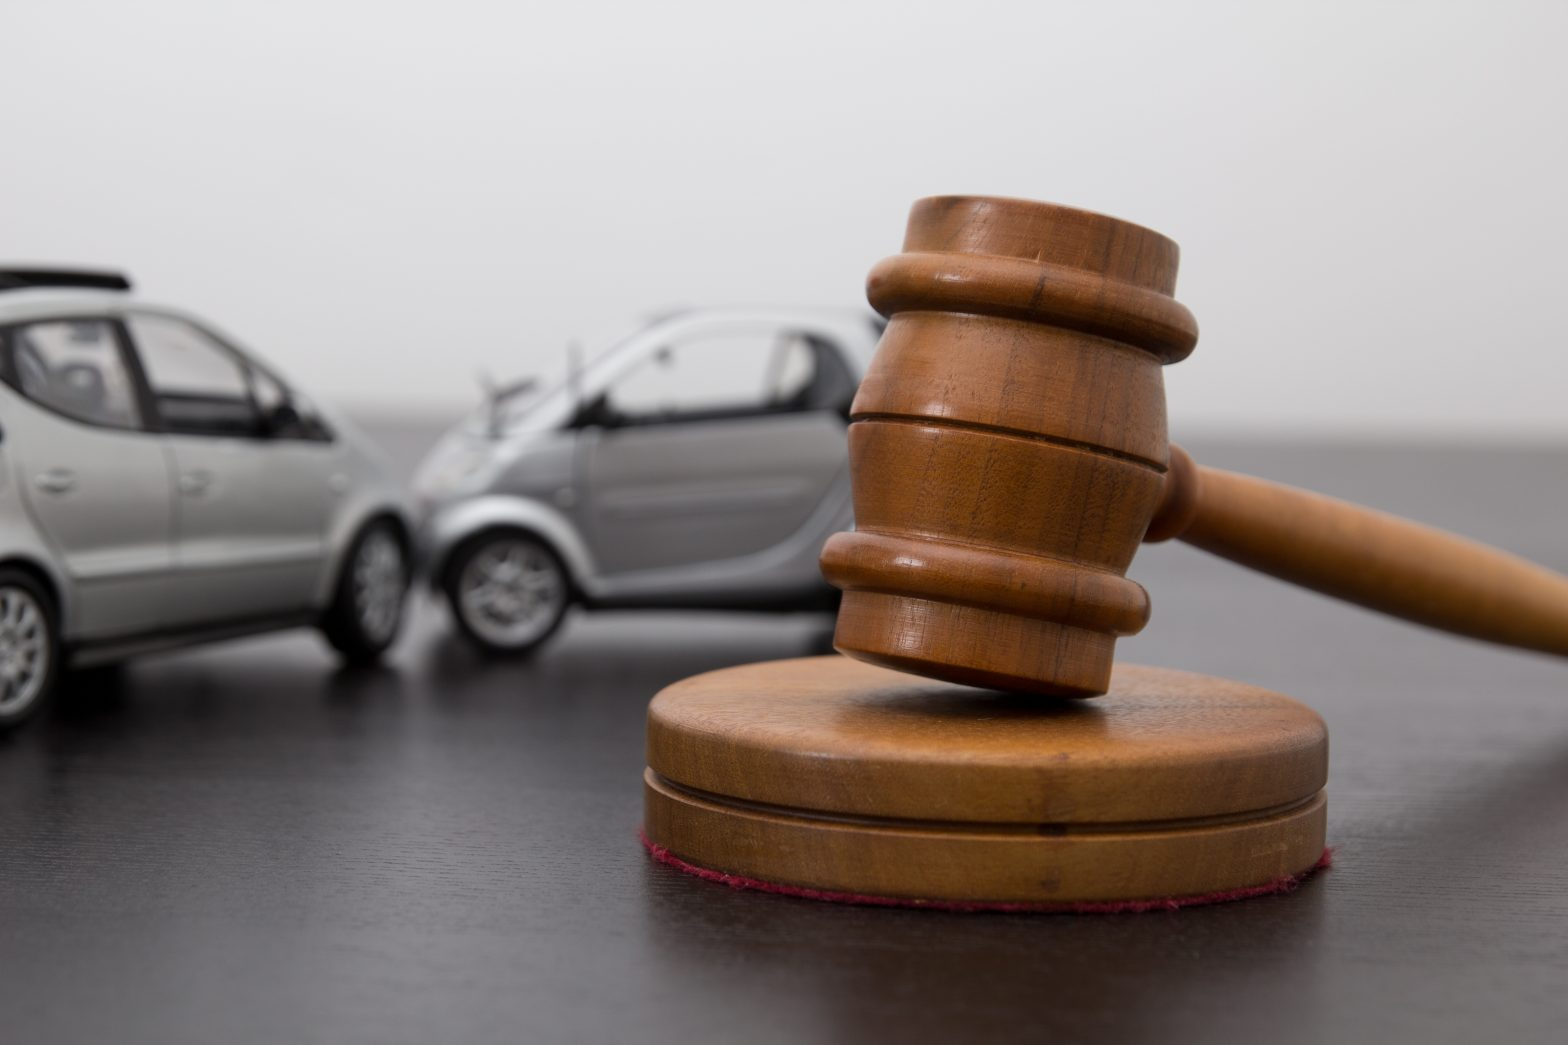 Two cars crashing and a gavel, meet with an Isle of Wight County Car Accident Lawyer to discuss your case.